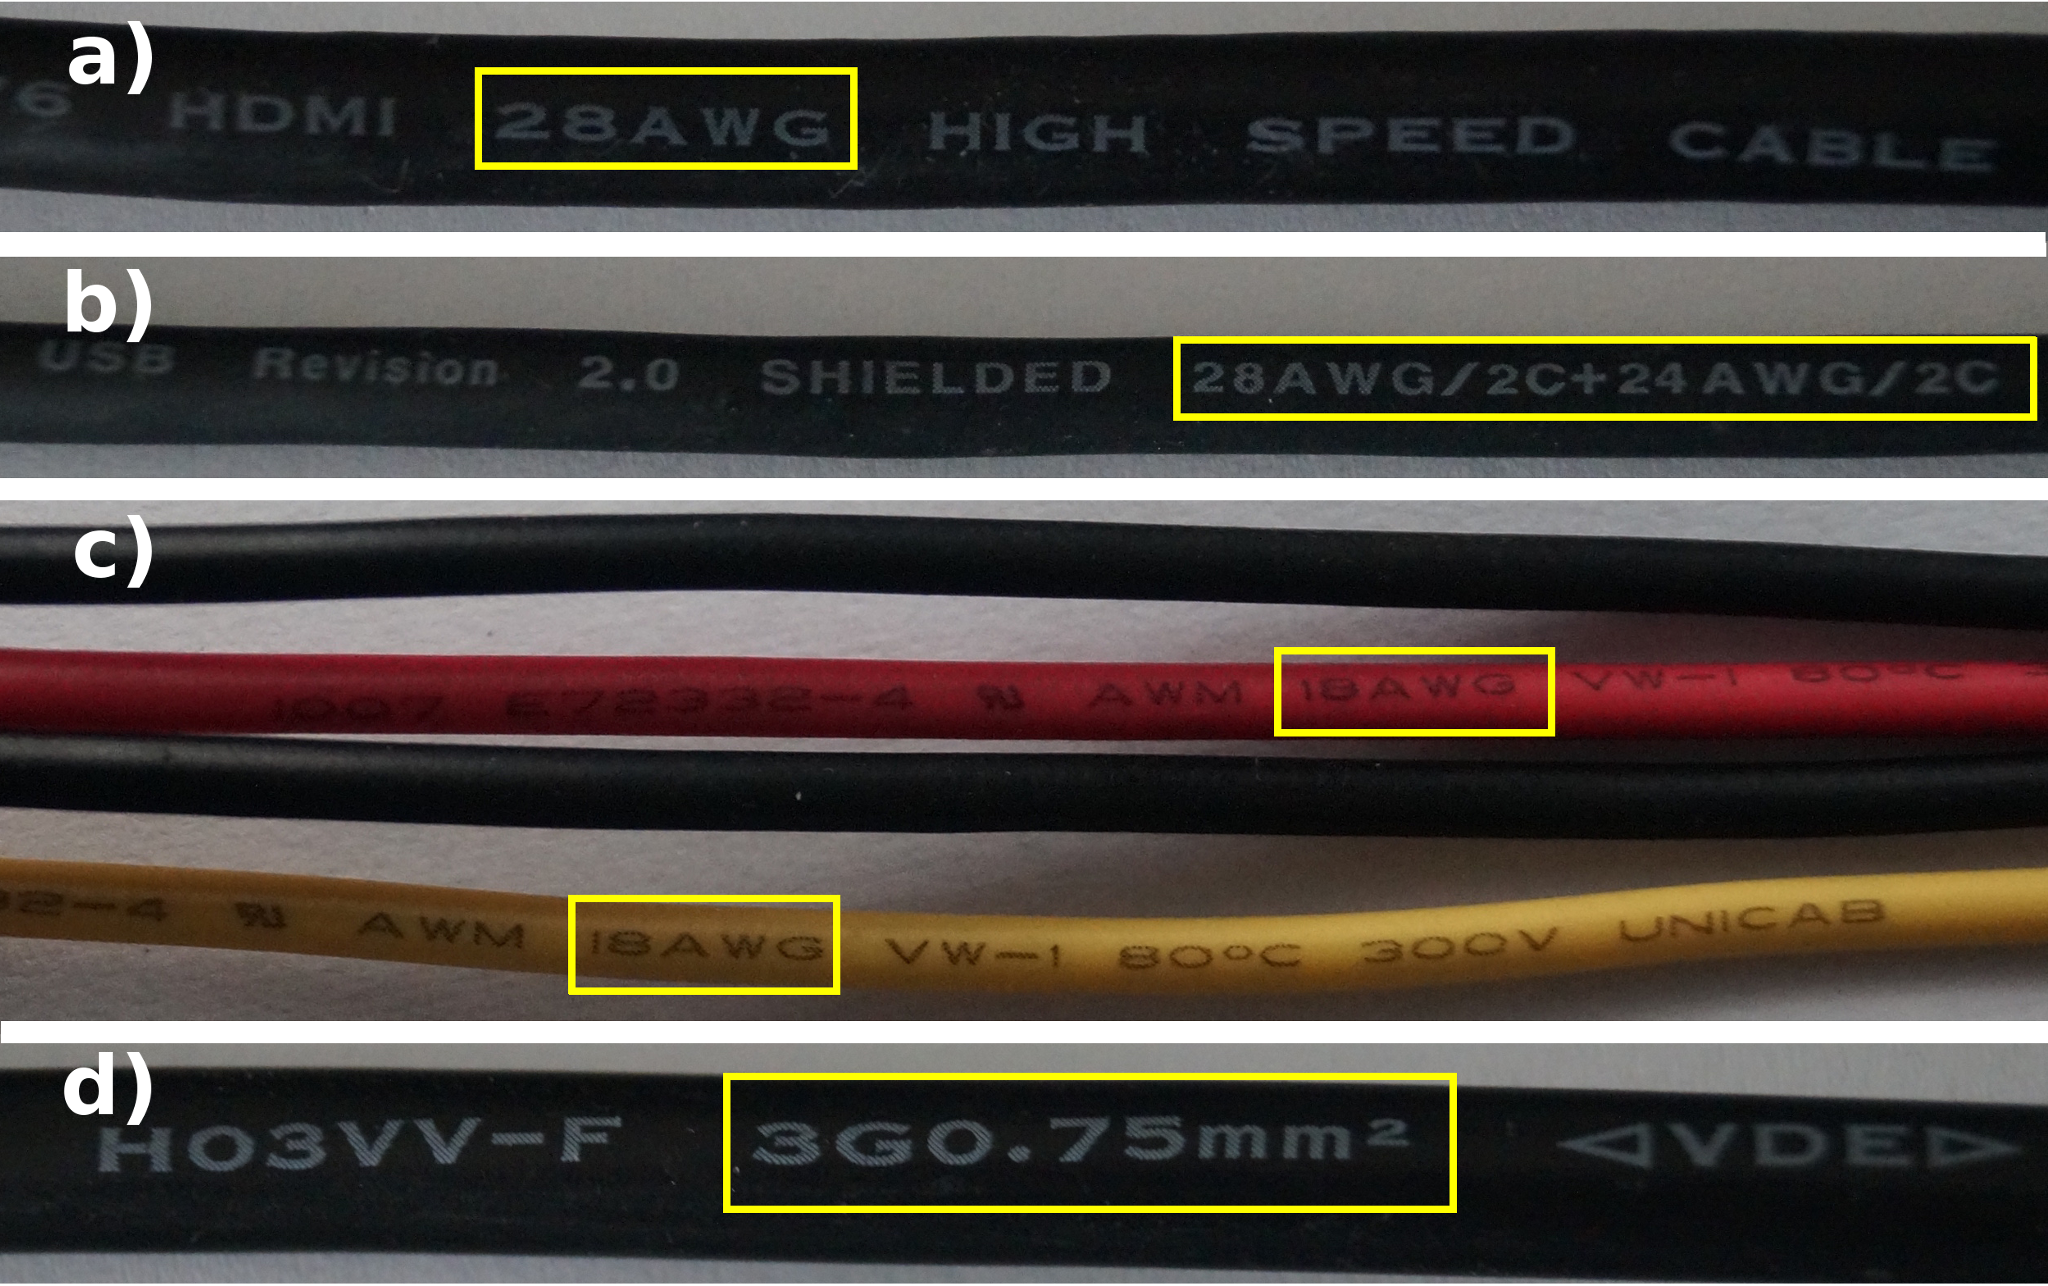 Example Wires Manufactured To Awg And Bs 67221986 Include A Hdmi B Usb C 5 V And 12 V Cables From Power Supply To Pc D Power Supply Cable With